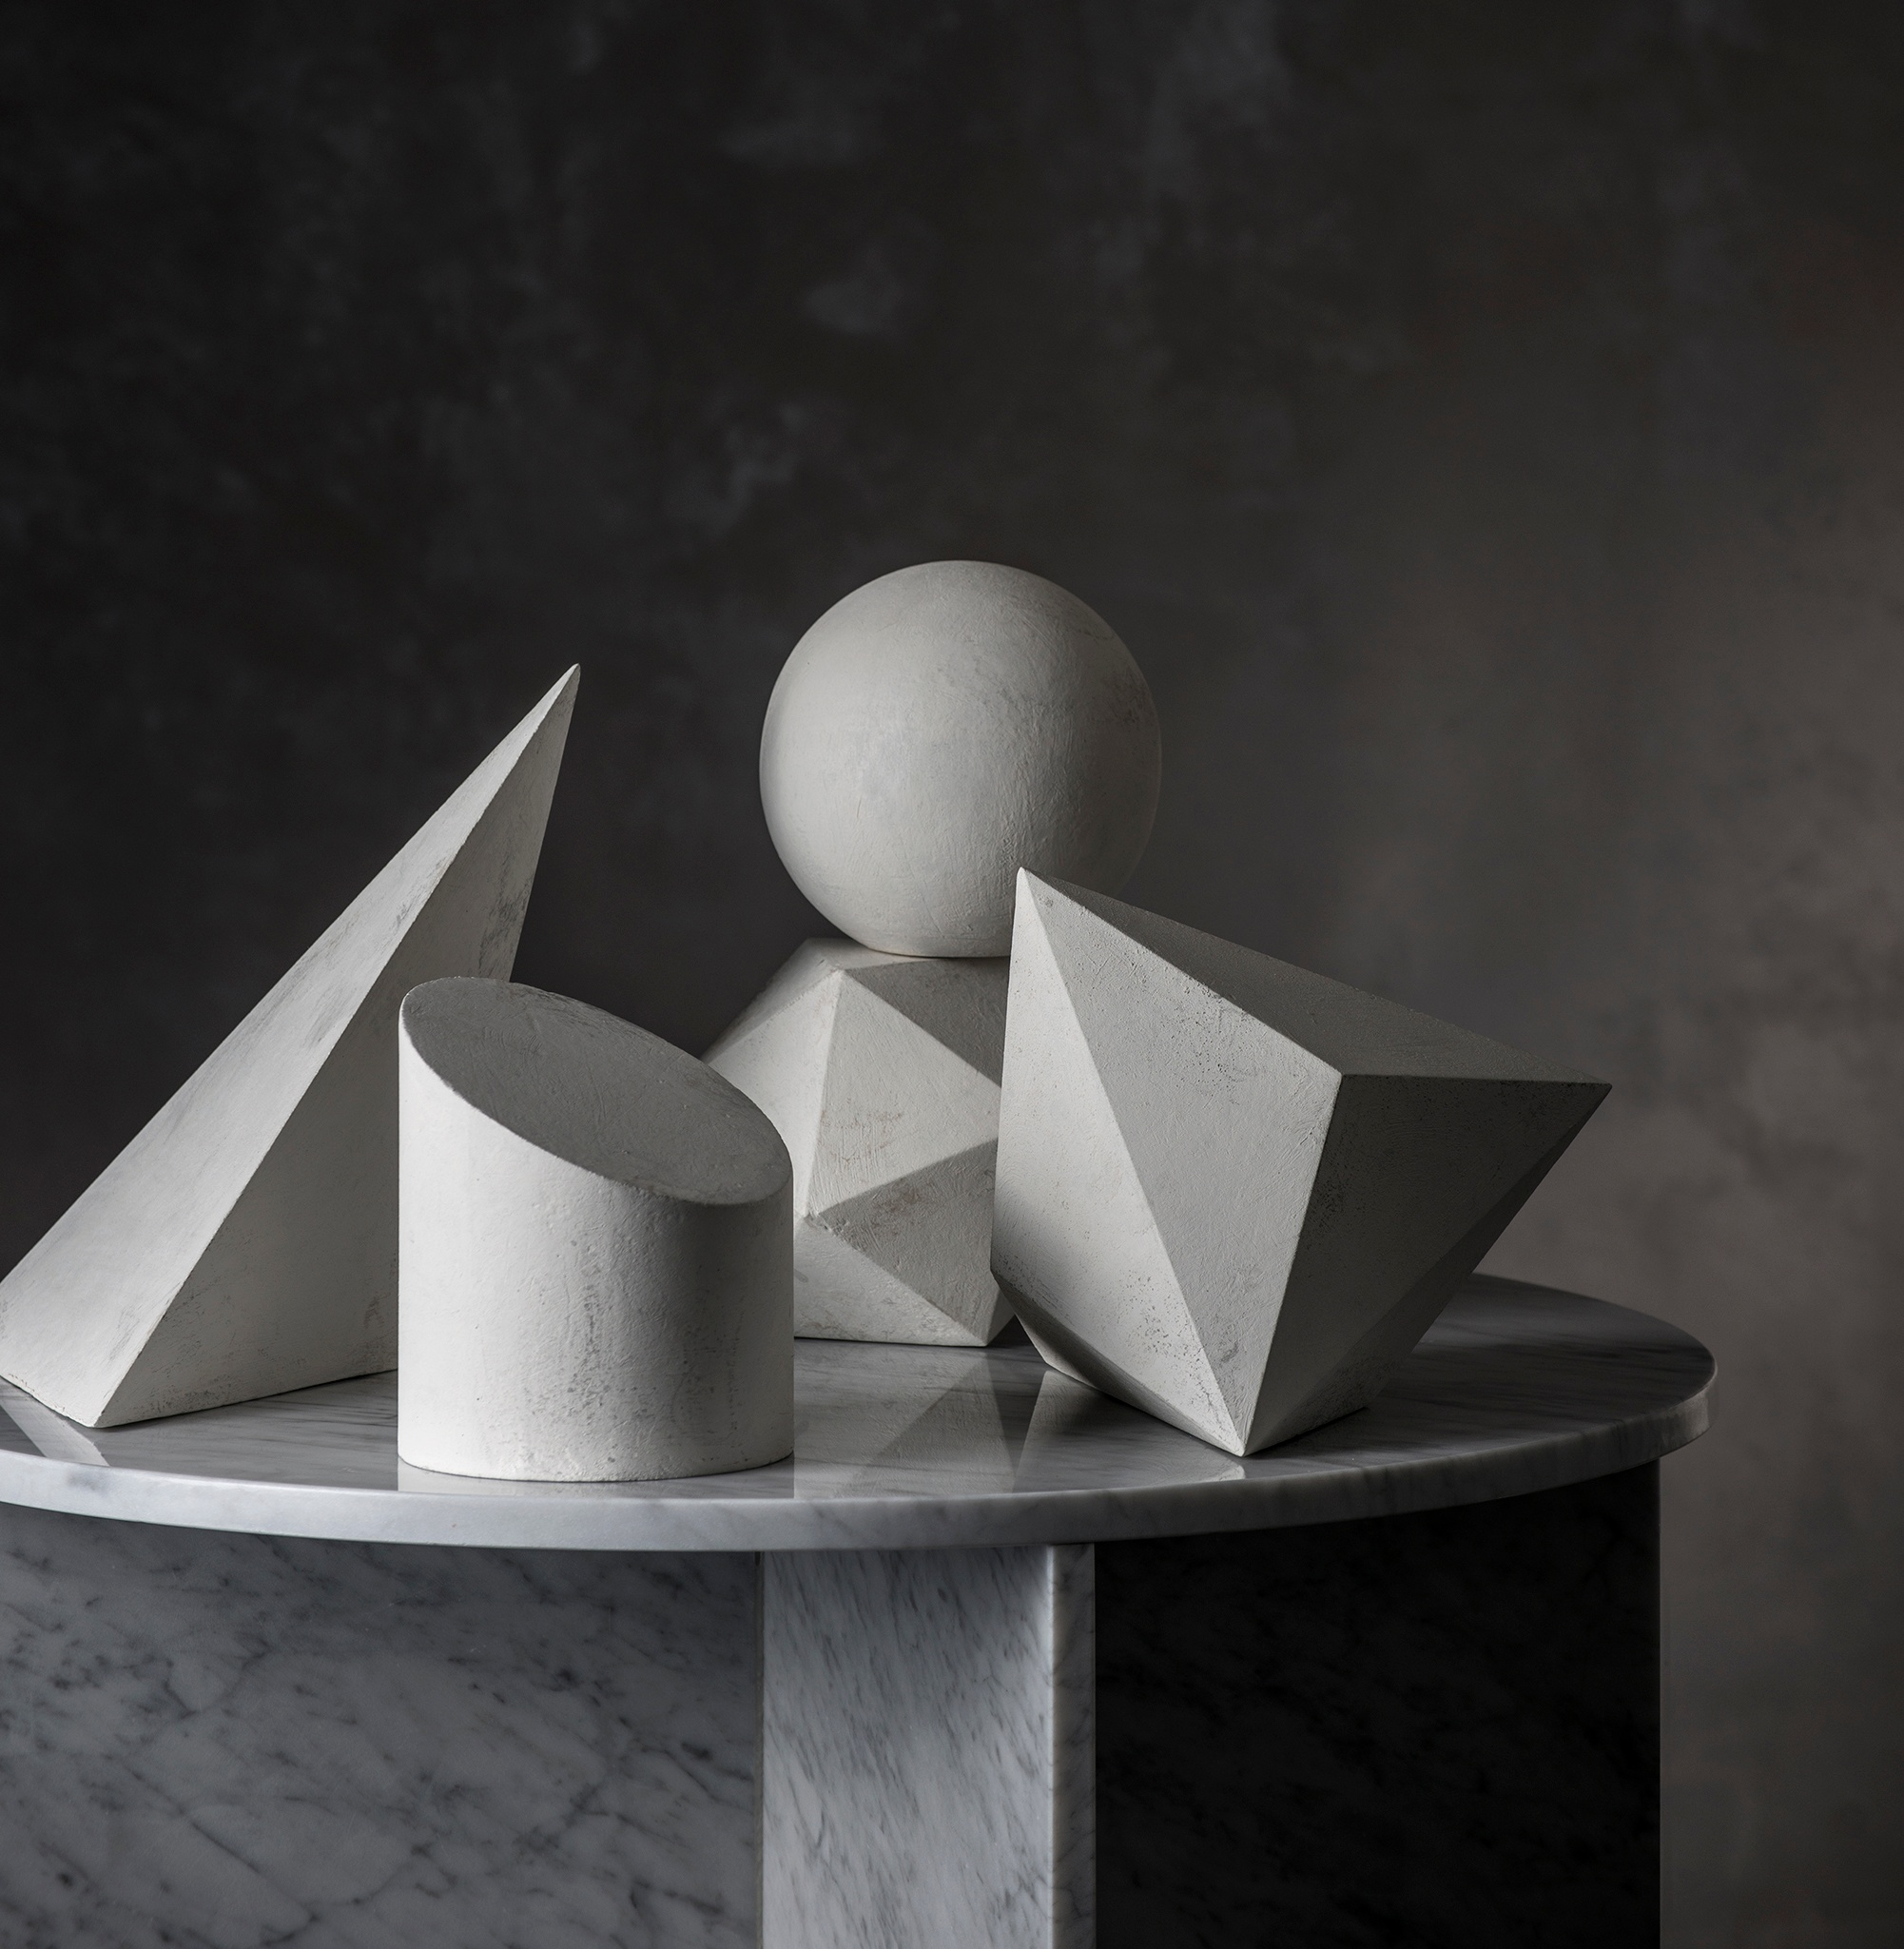 The Amy Meier Collection for Stone Yard